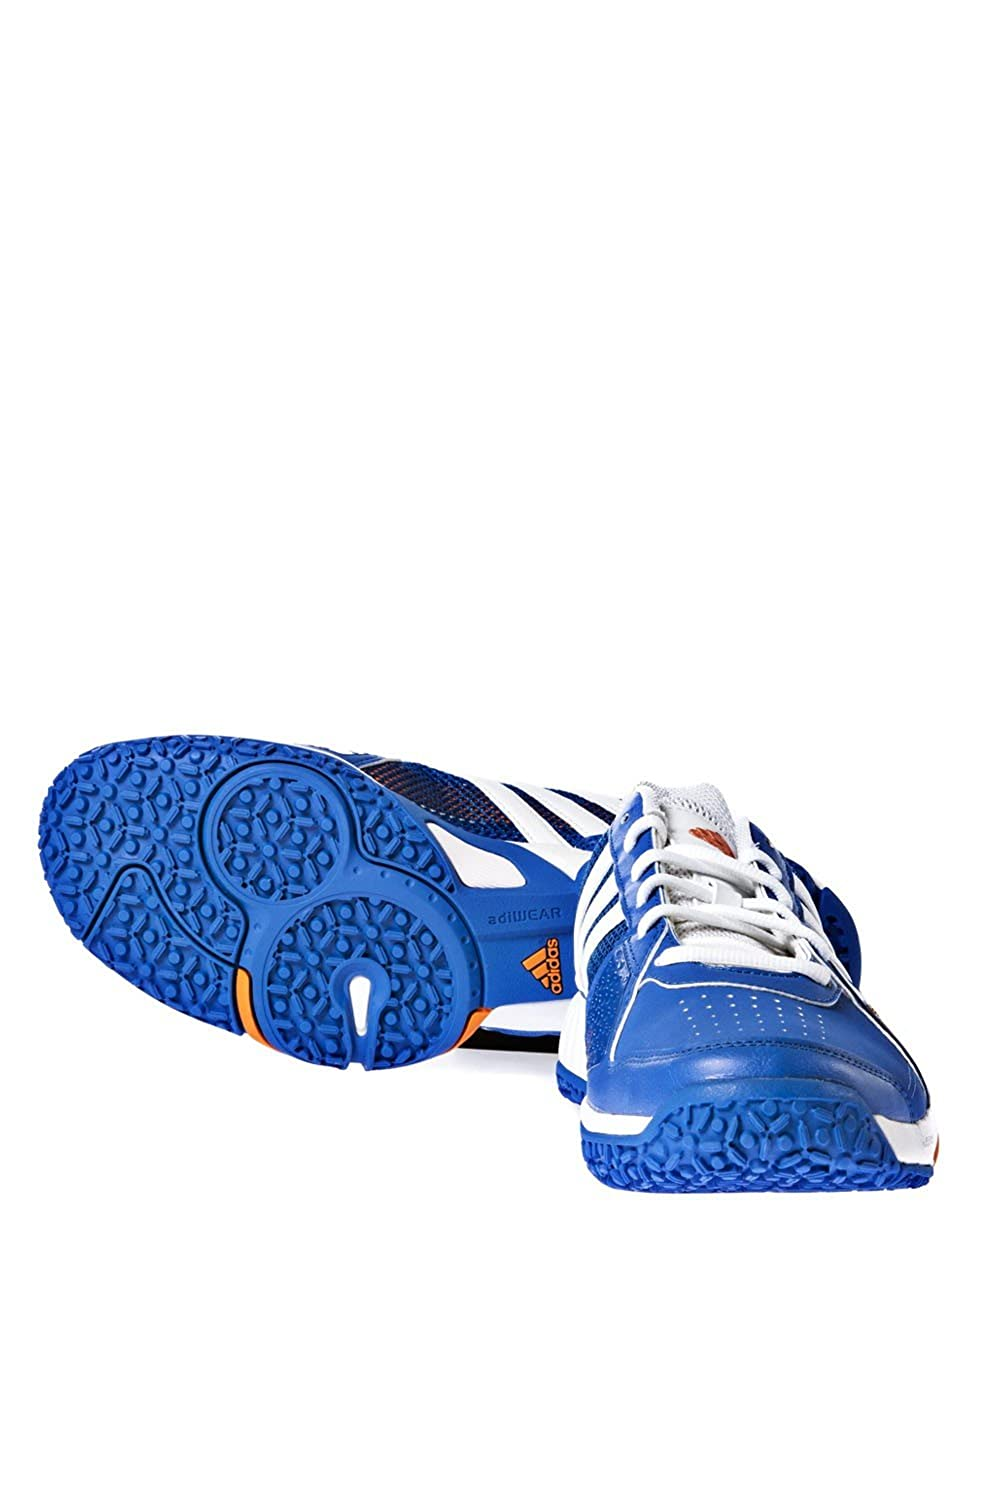 ZAPATILLA PADEL ADIDAS BARRICADE TEAM 3 42997 (41.1/3): Amazon.es: Zapatos y complementos